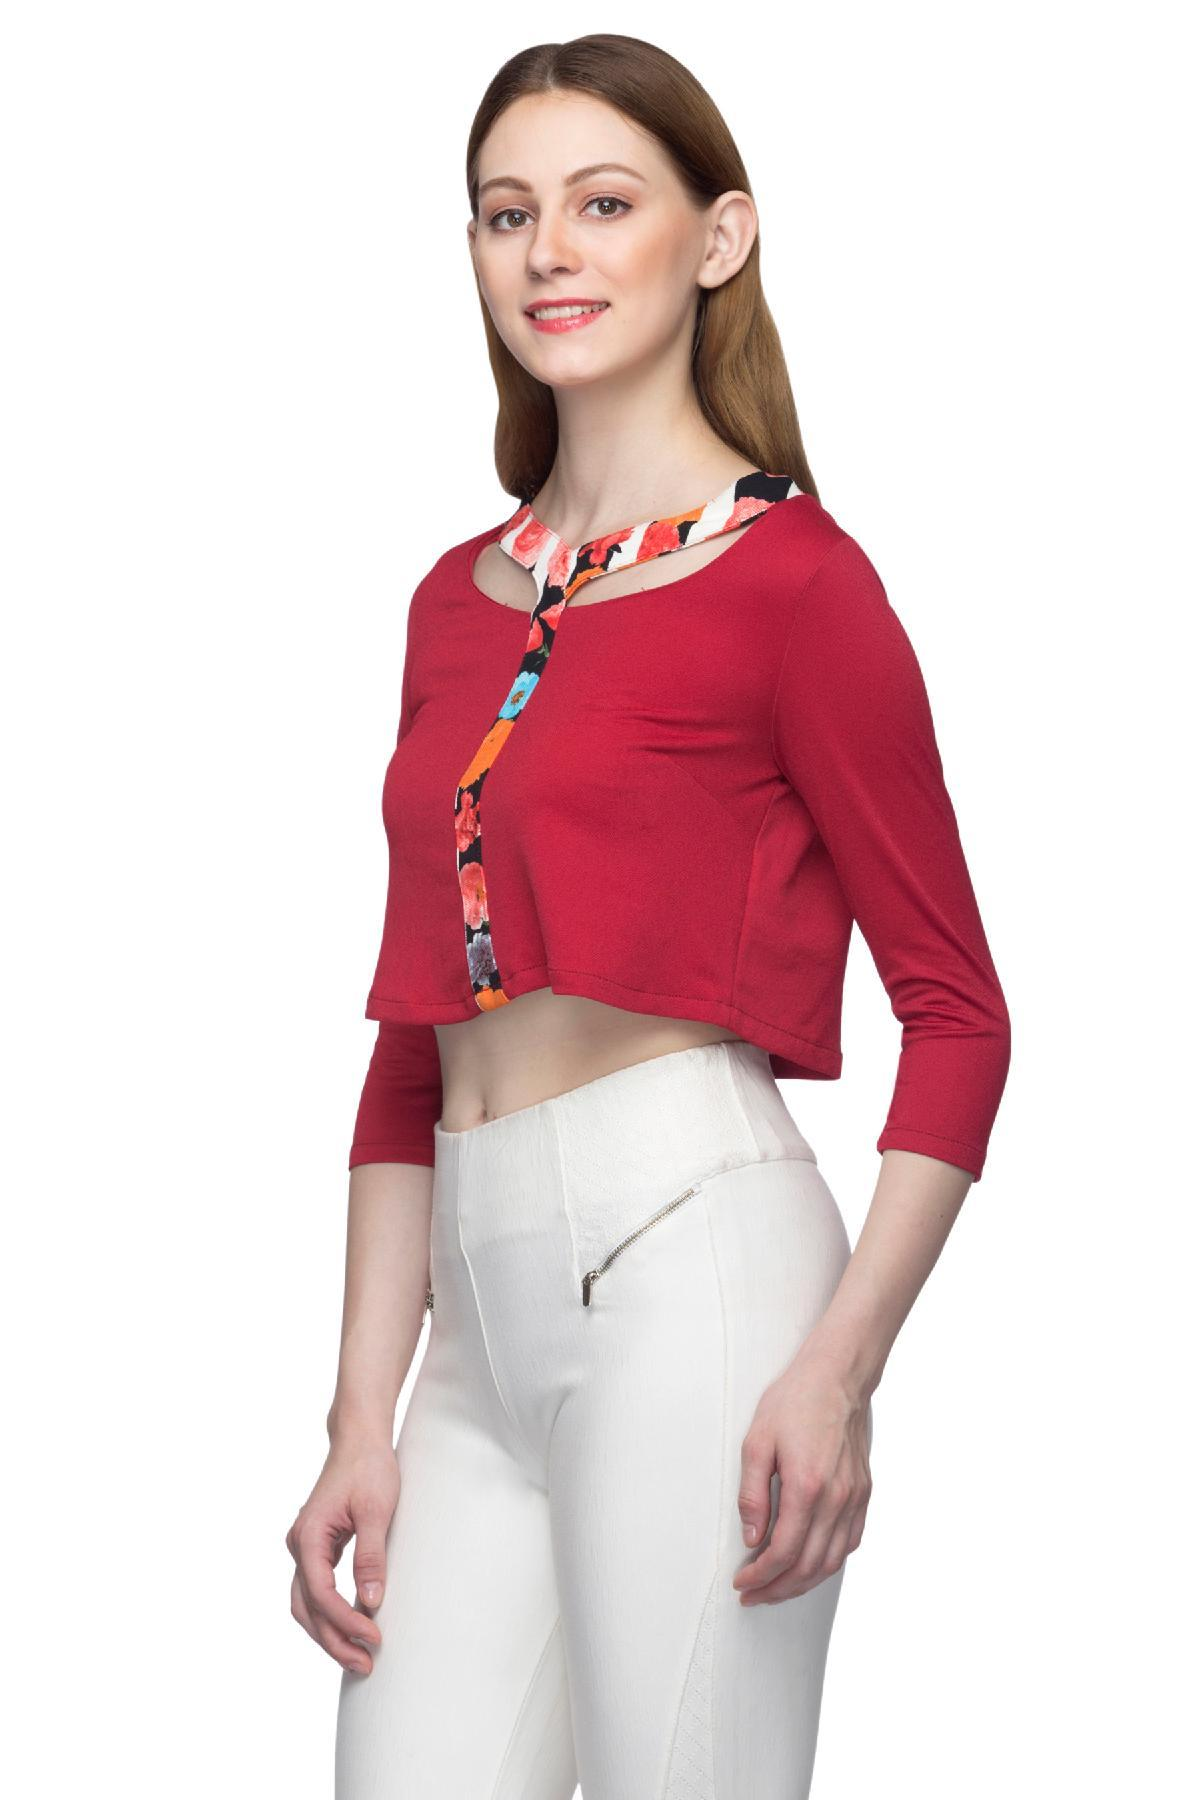 c9acec4694bc12 ... MADAME clothing Retro Crop Top Deep Red crop-top for rent ...